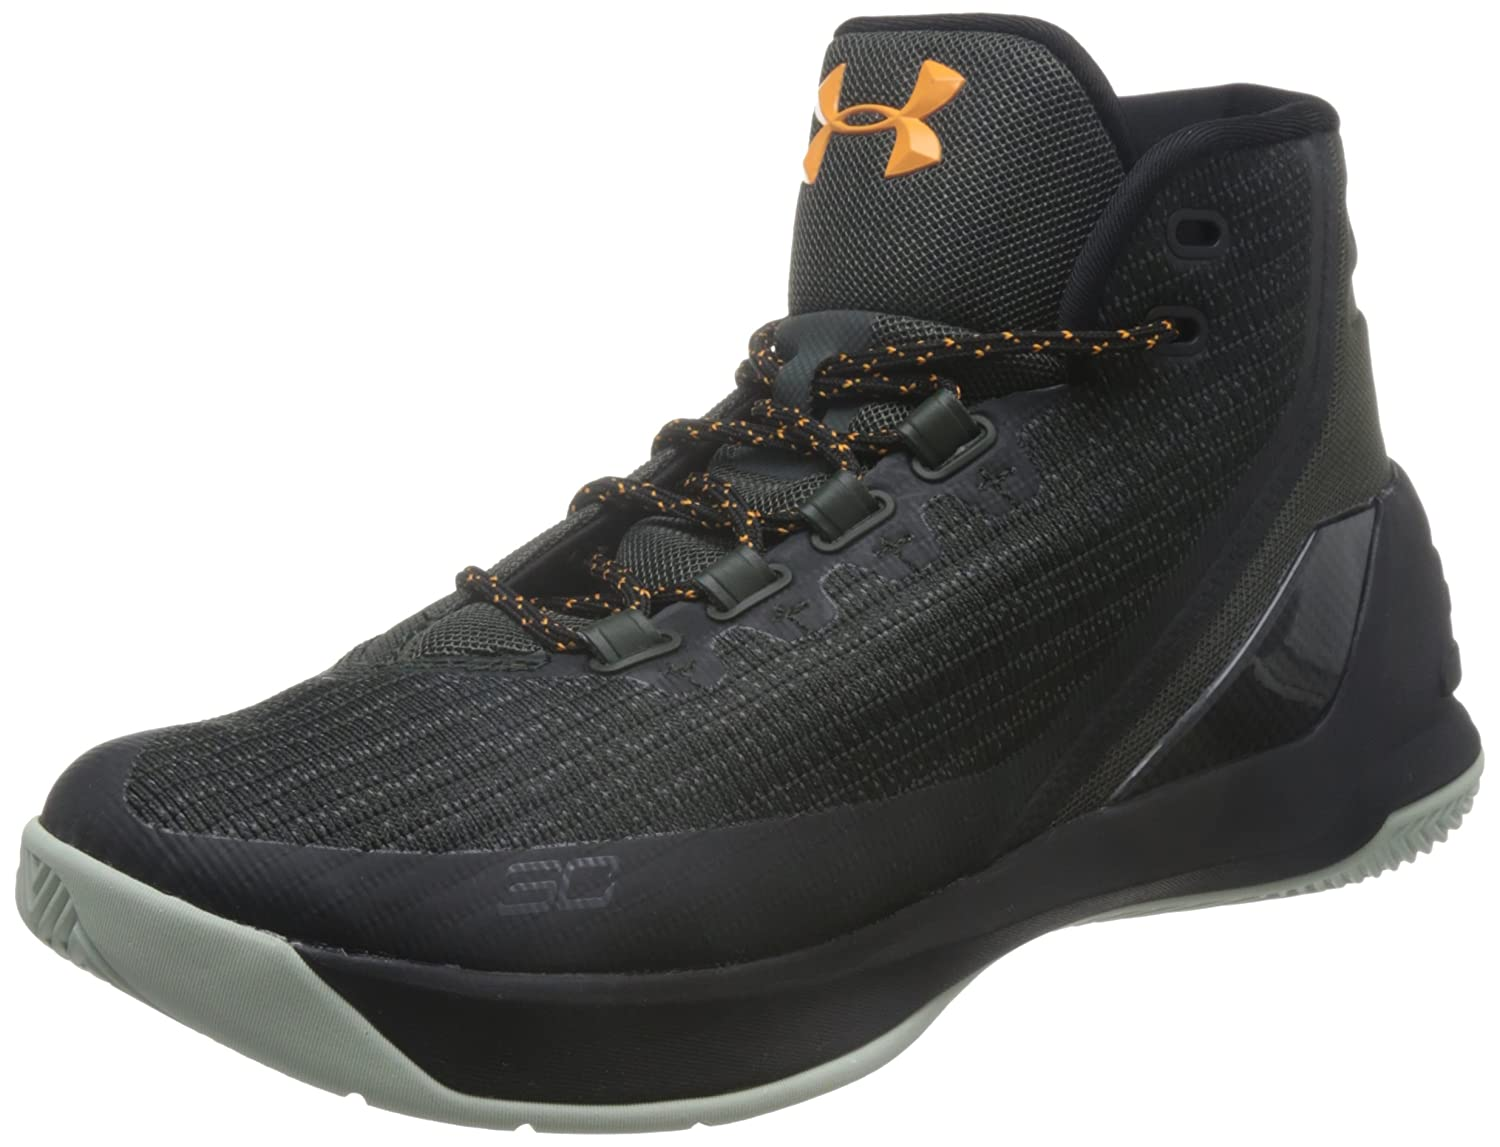 Under Armour Curry 42.5 3 Basketball Chaussure 42.5 Curry EU|Black b2aa43